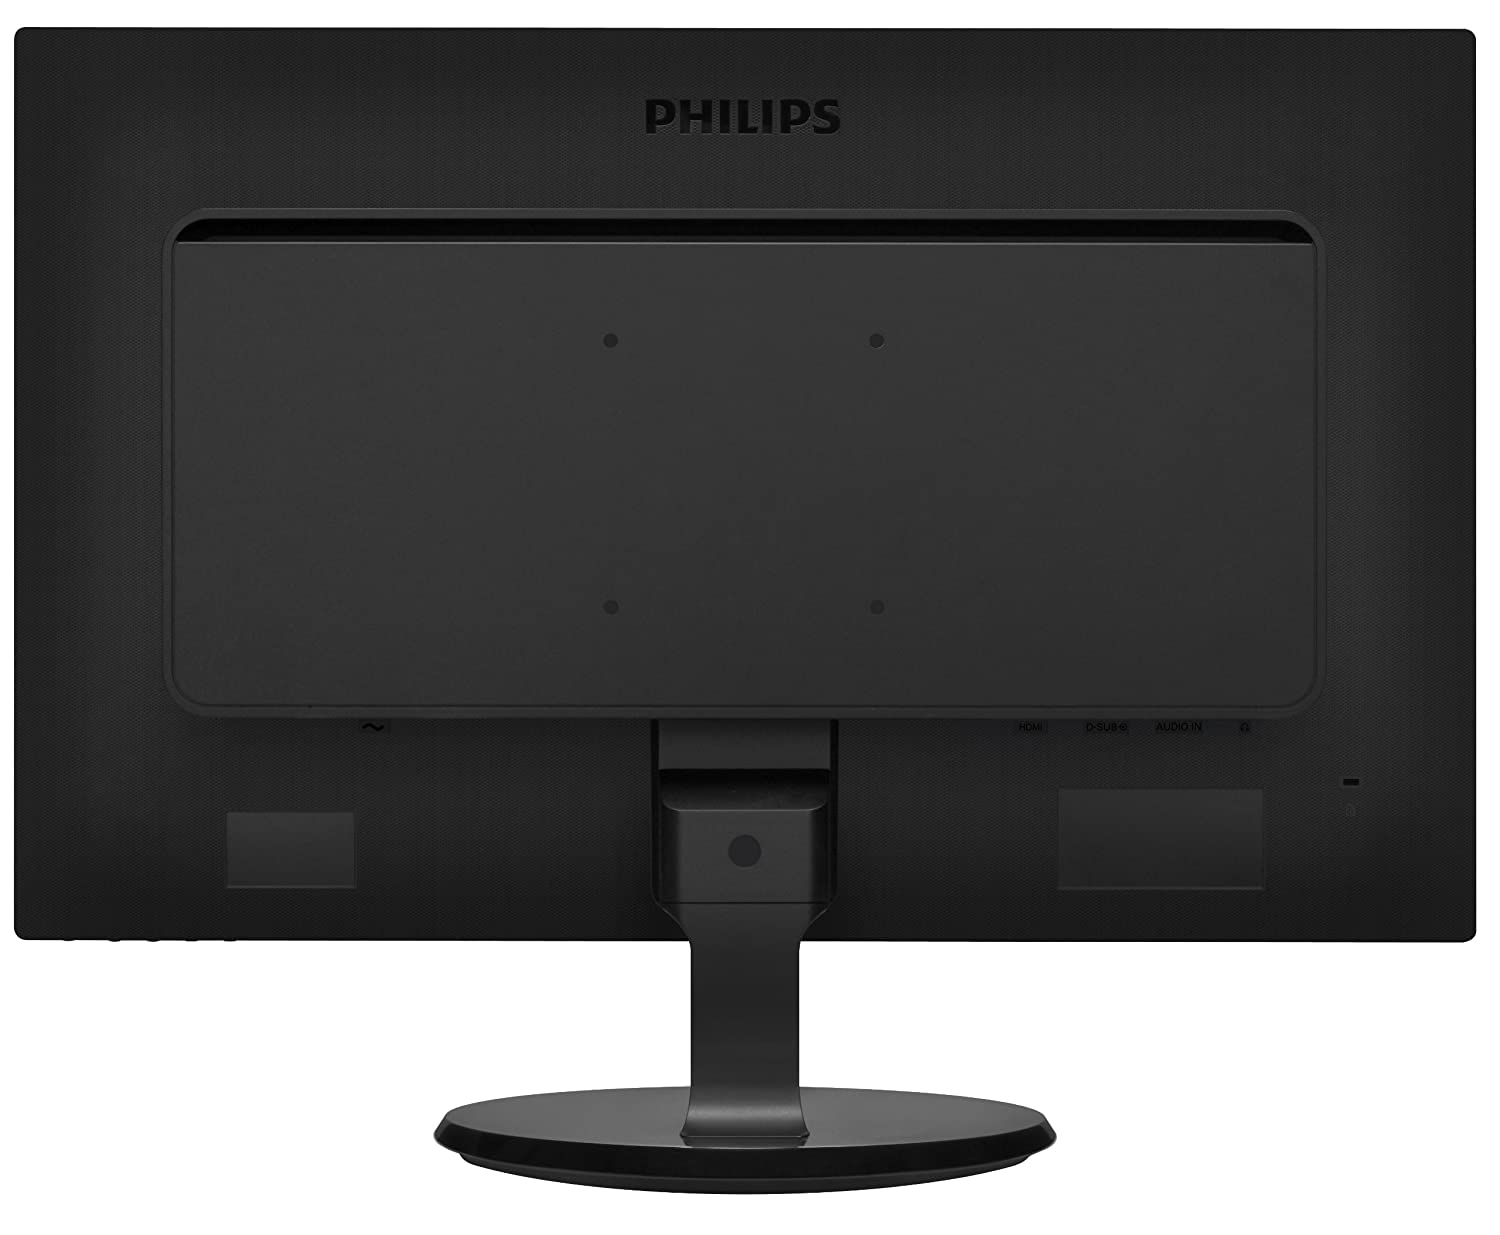 Philips 222EL2SB/00 Monitor Drivers for Windows Download